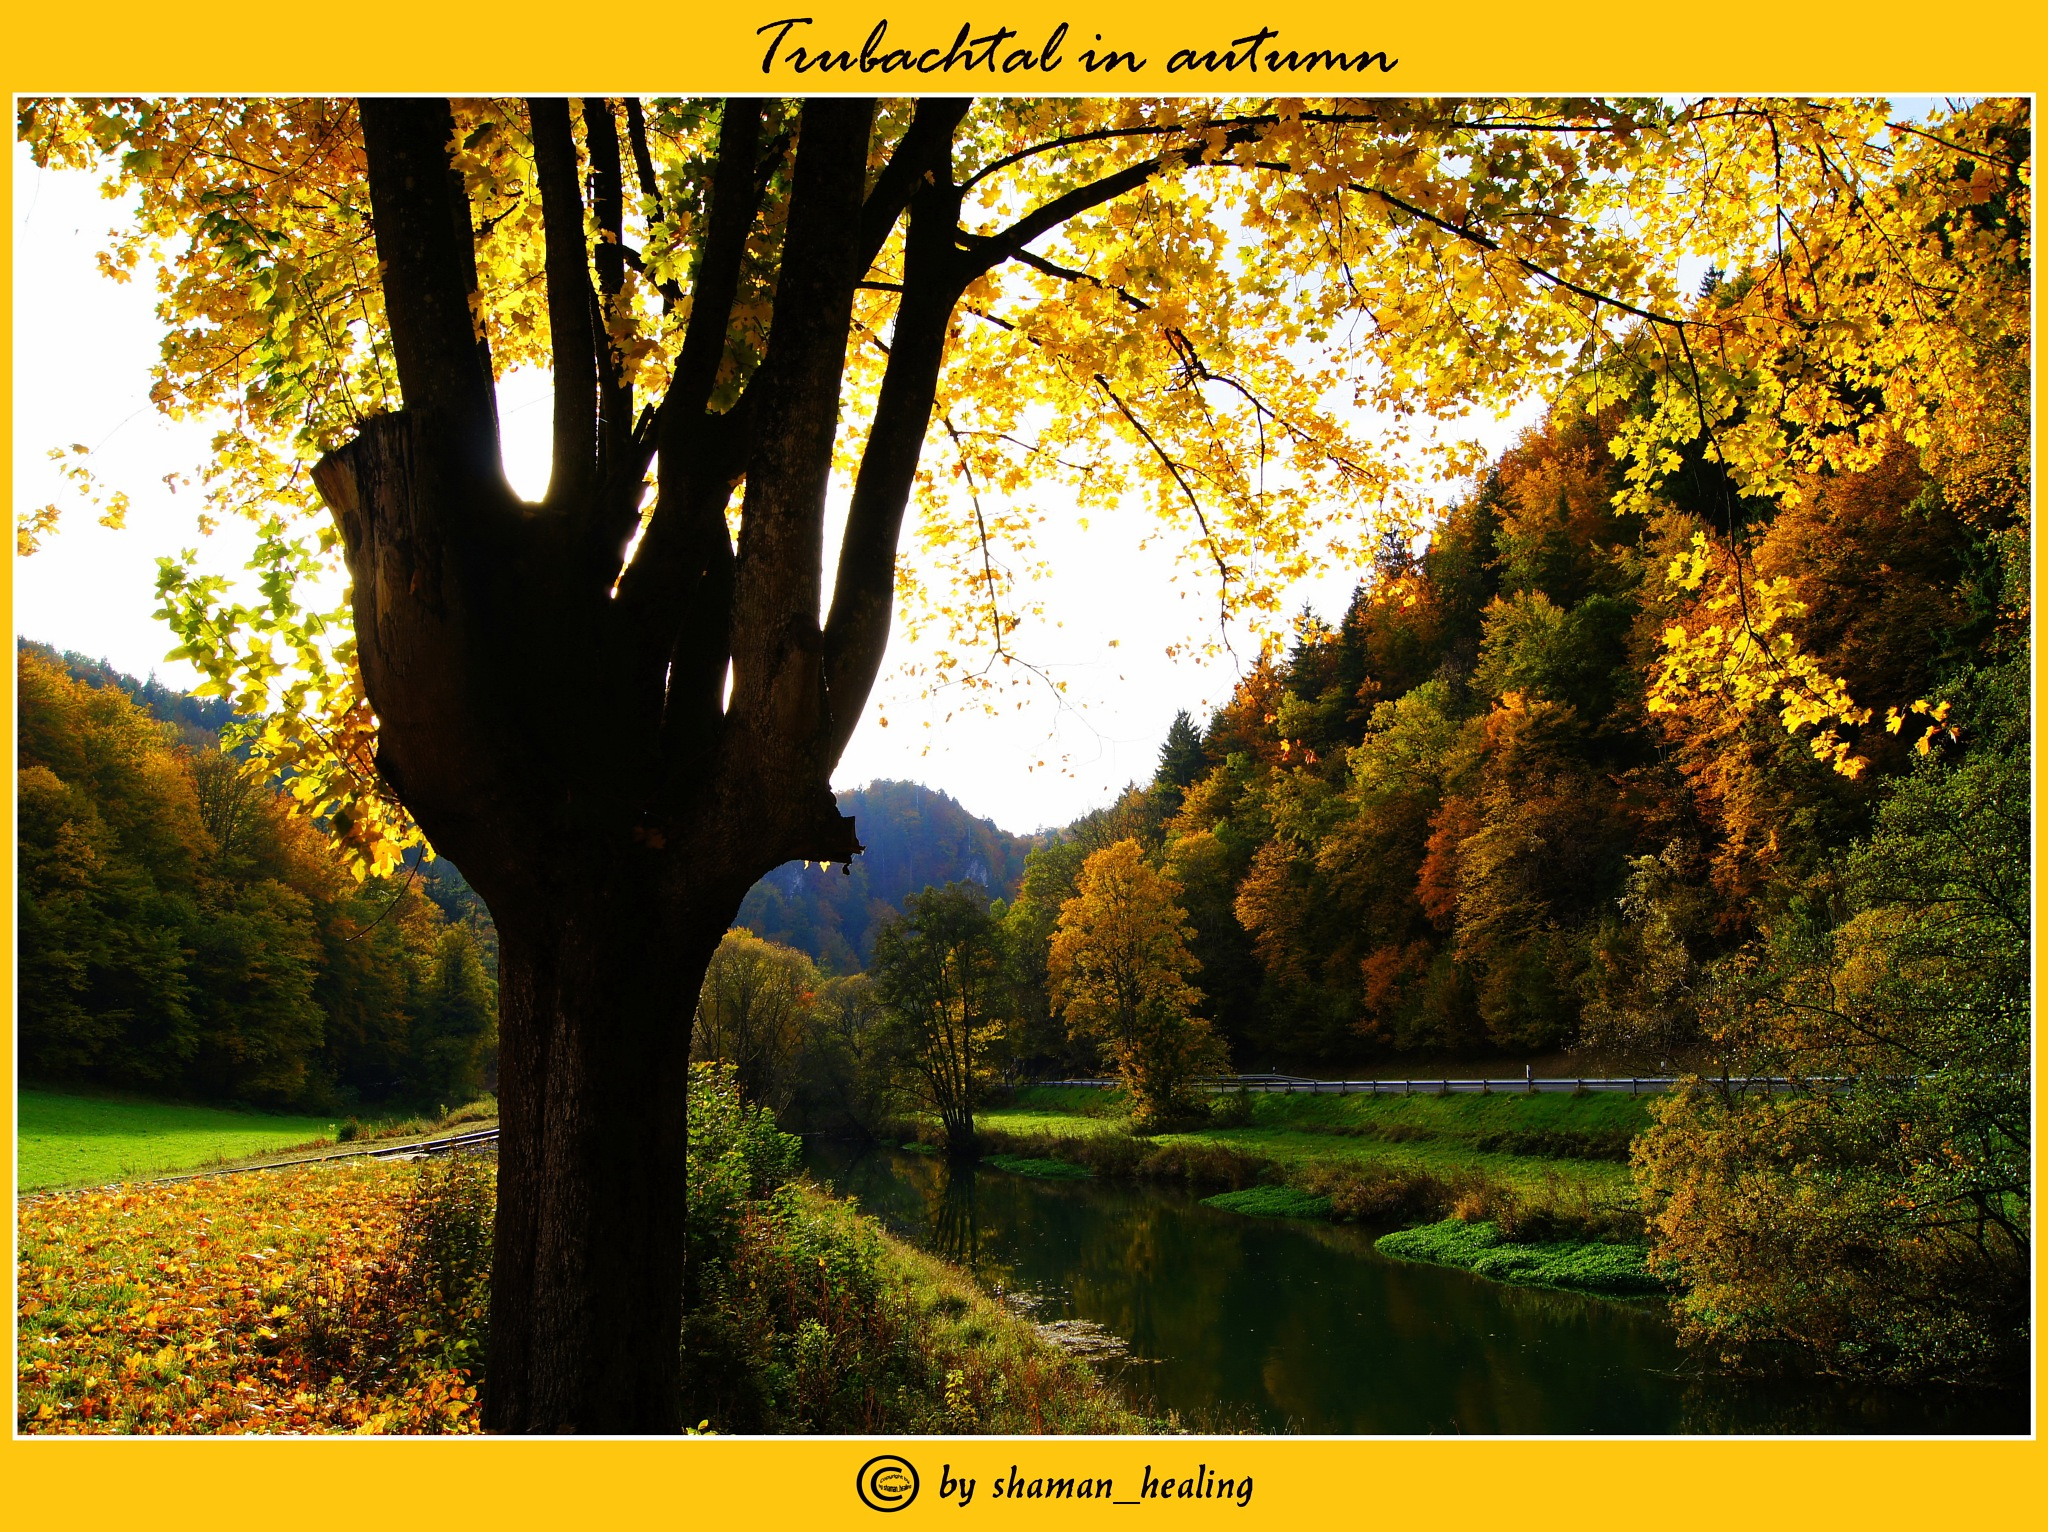 Trubachtal im Herbst/Trubachtal in autumn by shamanhealingflickr